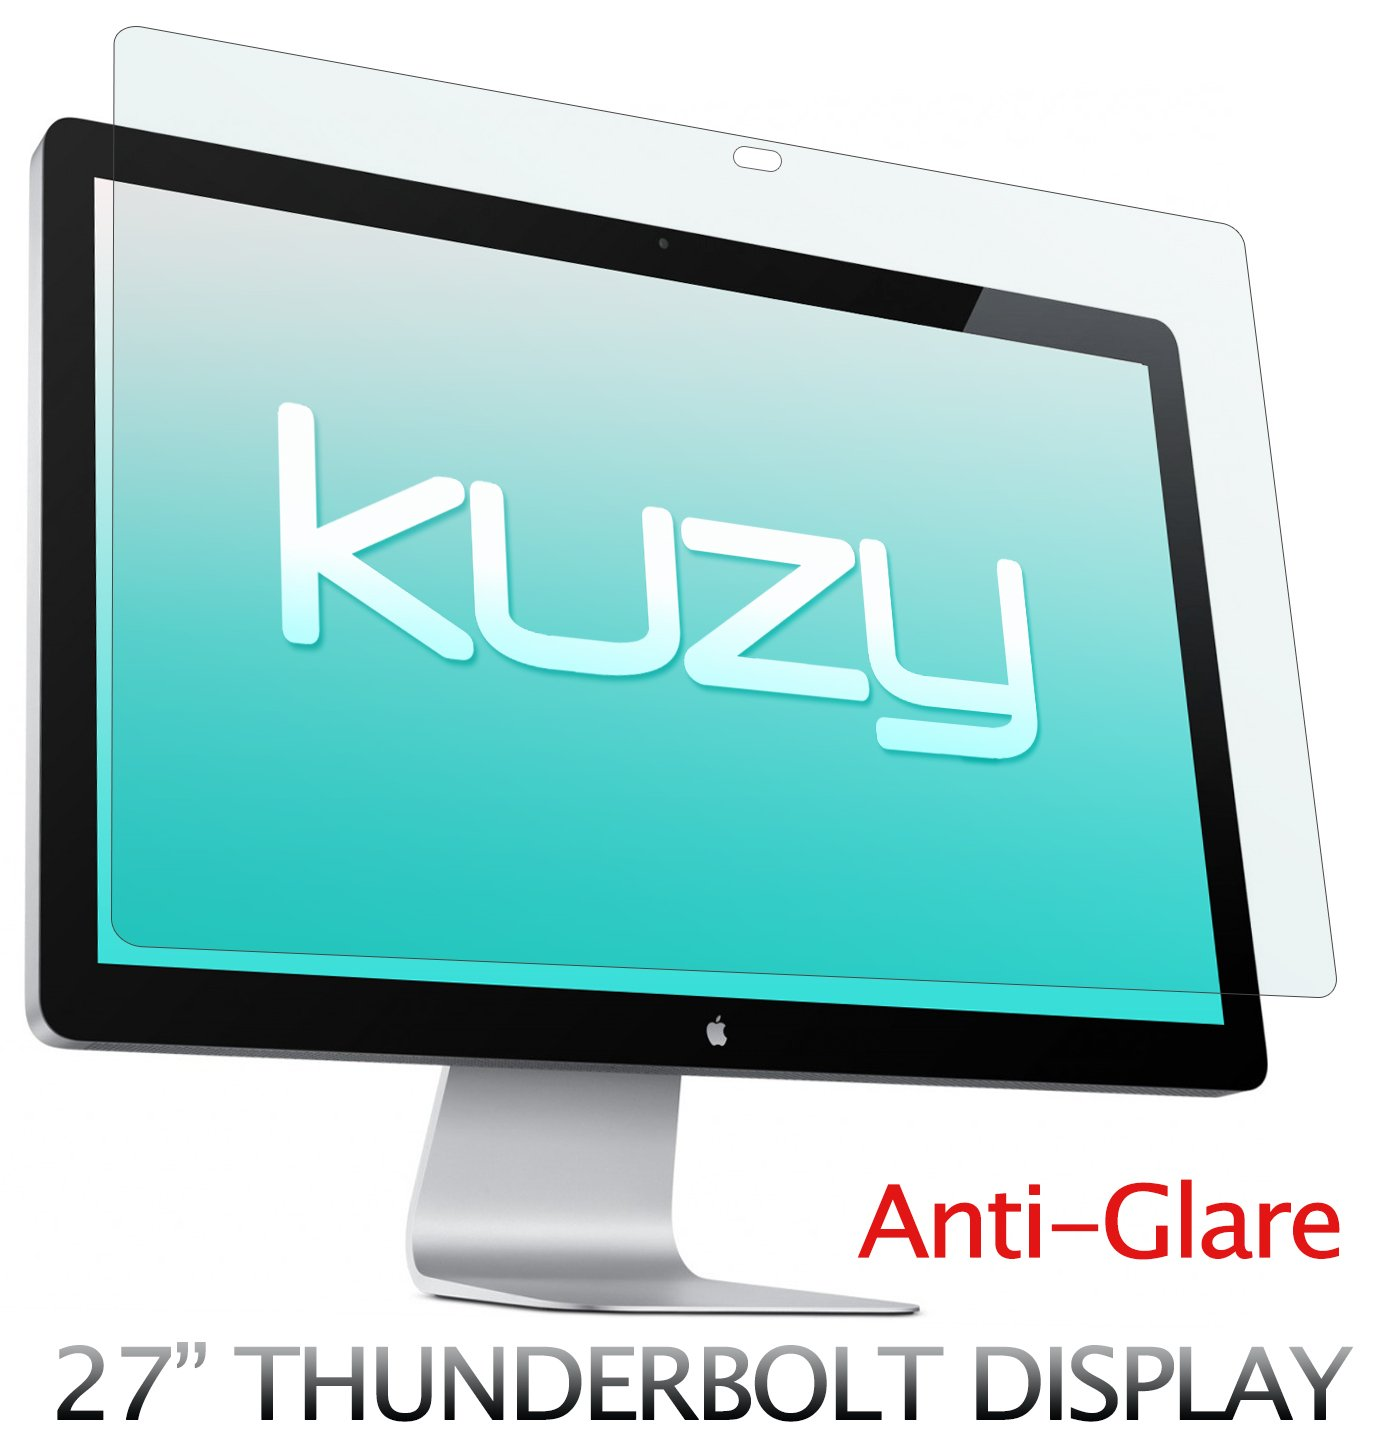 Kuzy - Anti-Glare Matte Screen Protector Filter for 27 inch Apple Thunderbolt and/or Cinema Display 27'' Model A1407 and A1316 - ANTI-GLARE